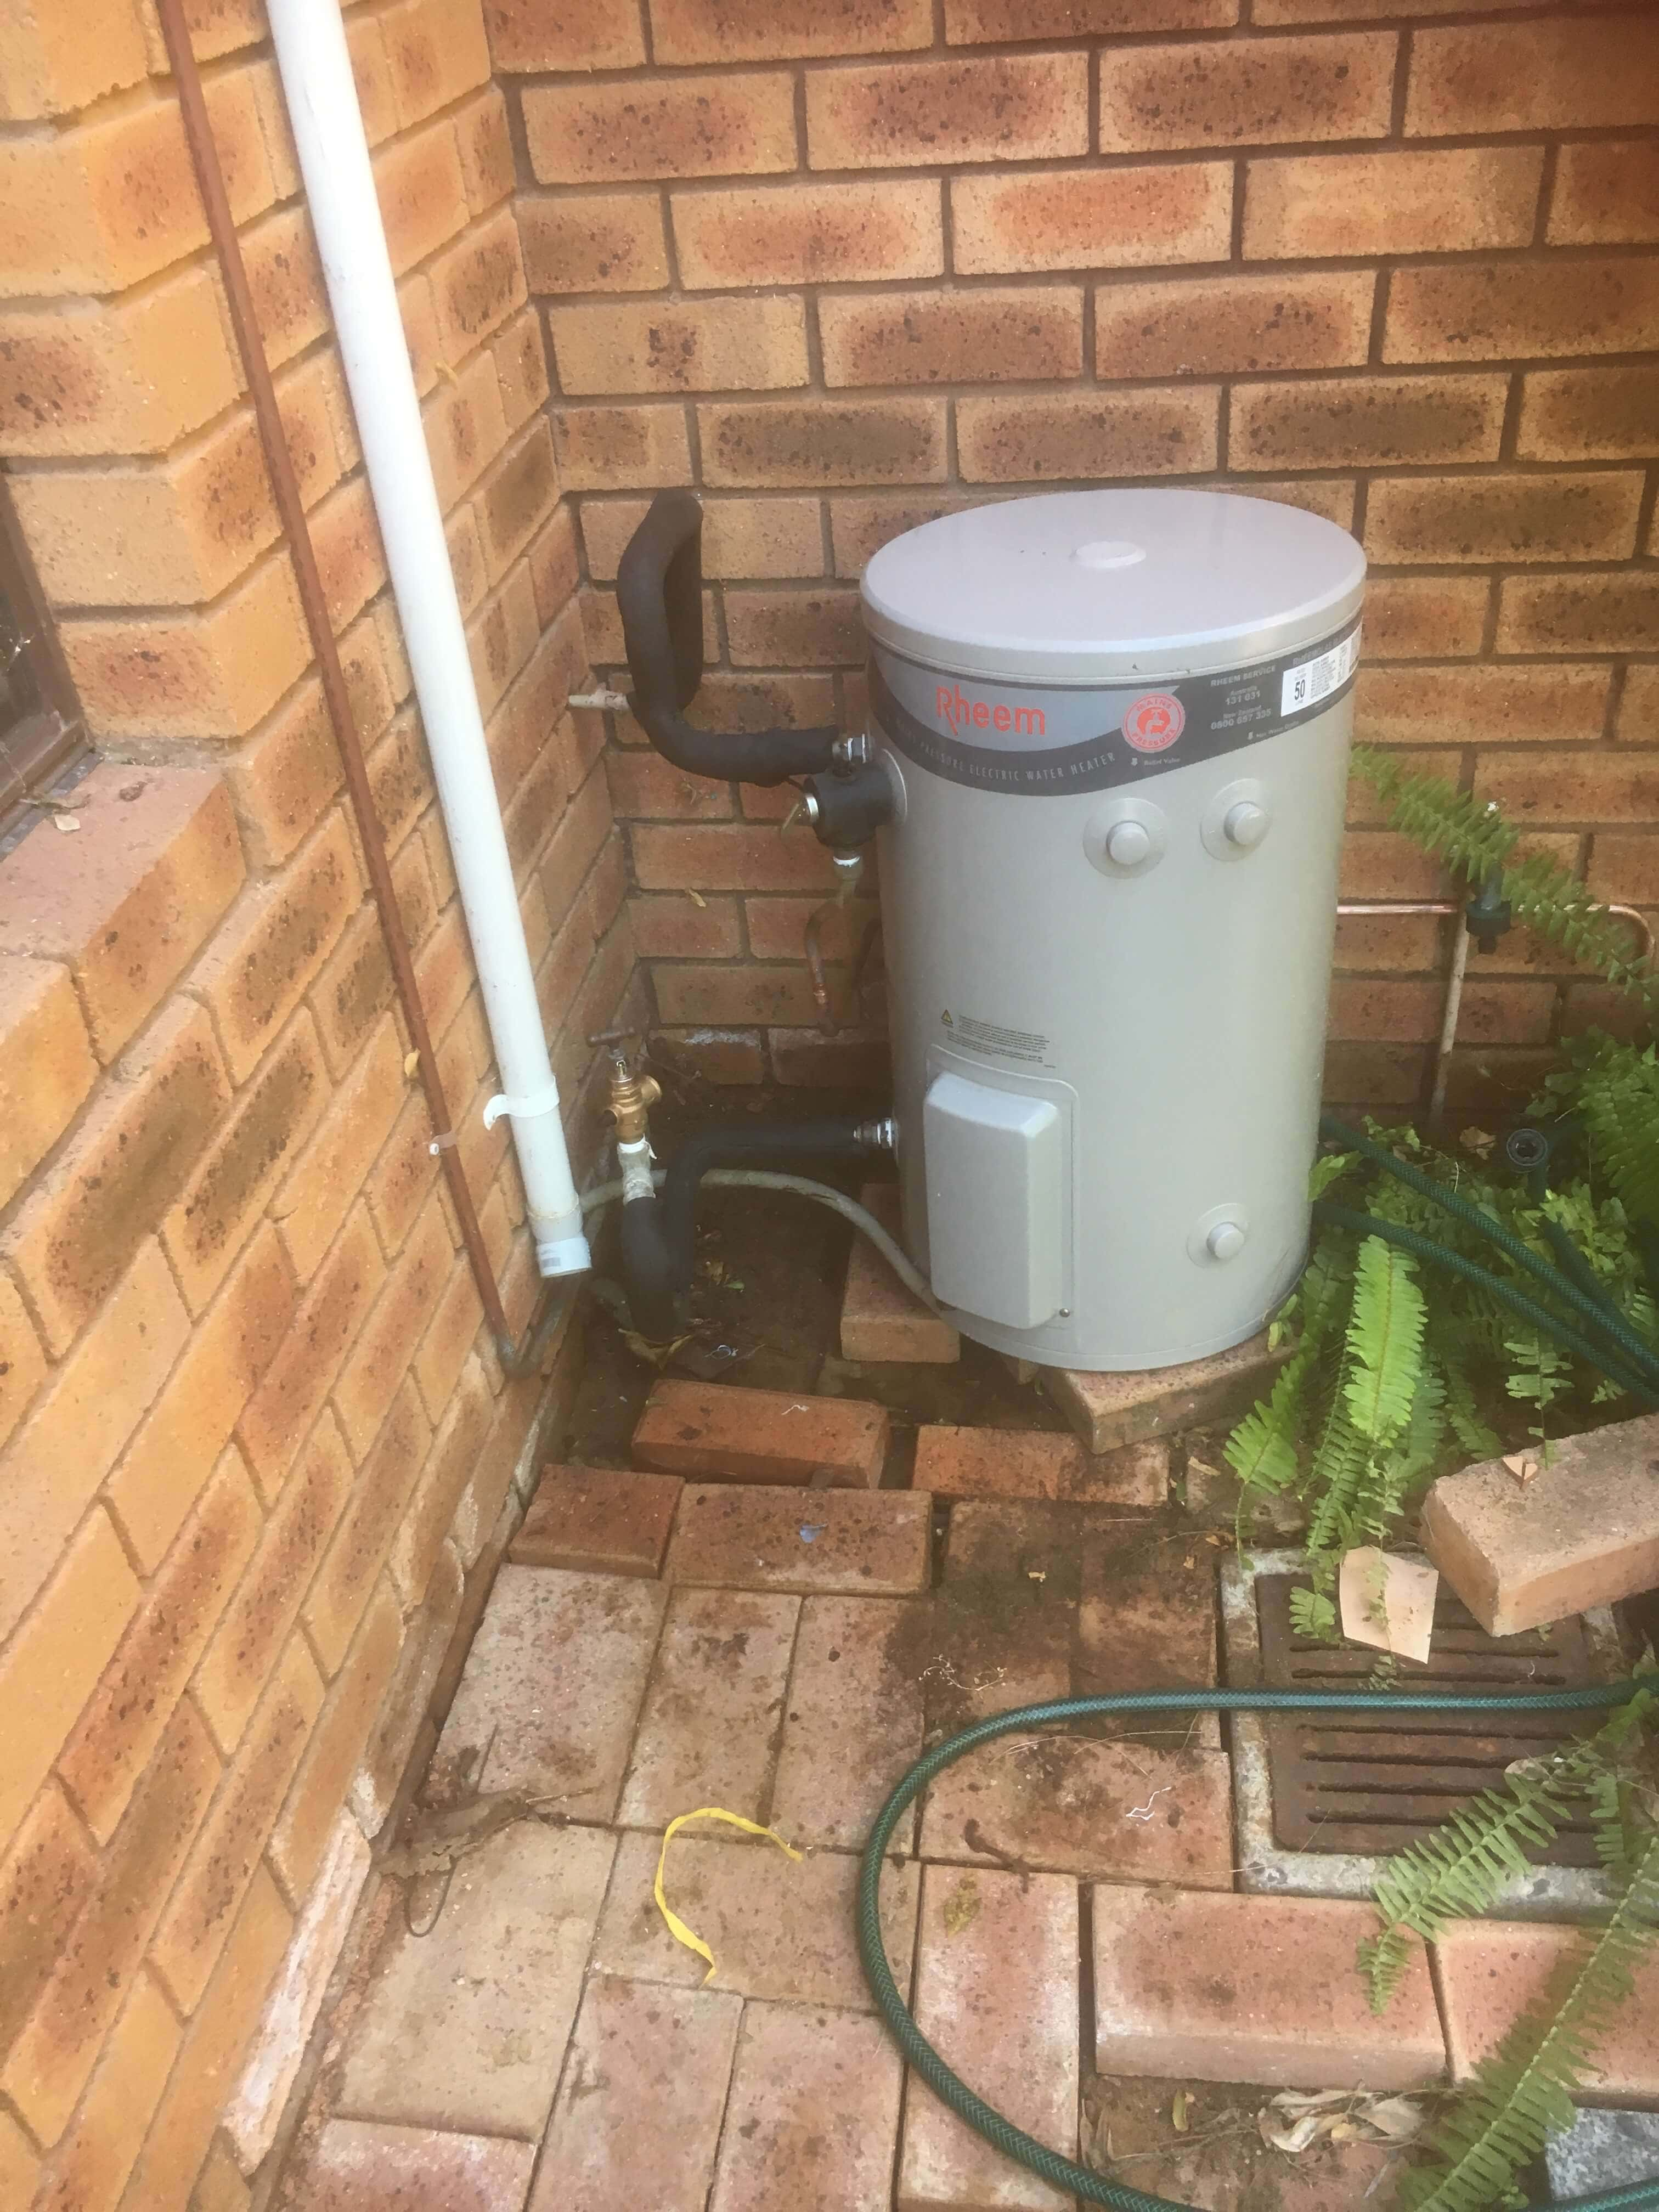 Everyday Plumbers Residential Hotwater Services - Full View of the Machine Outside